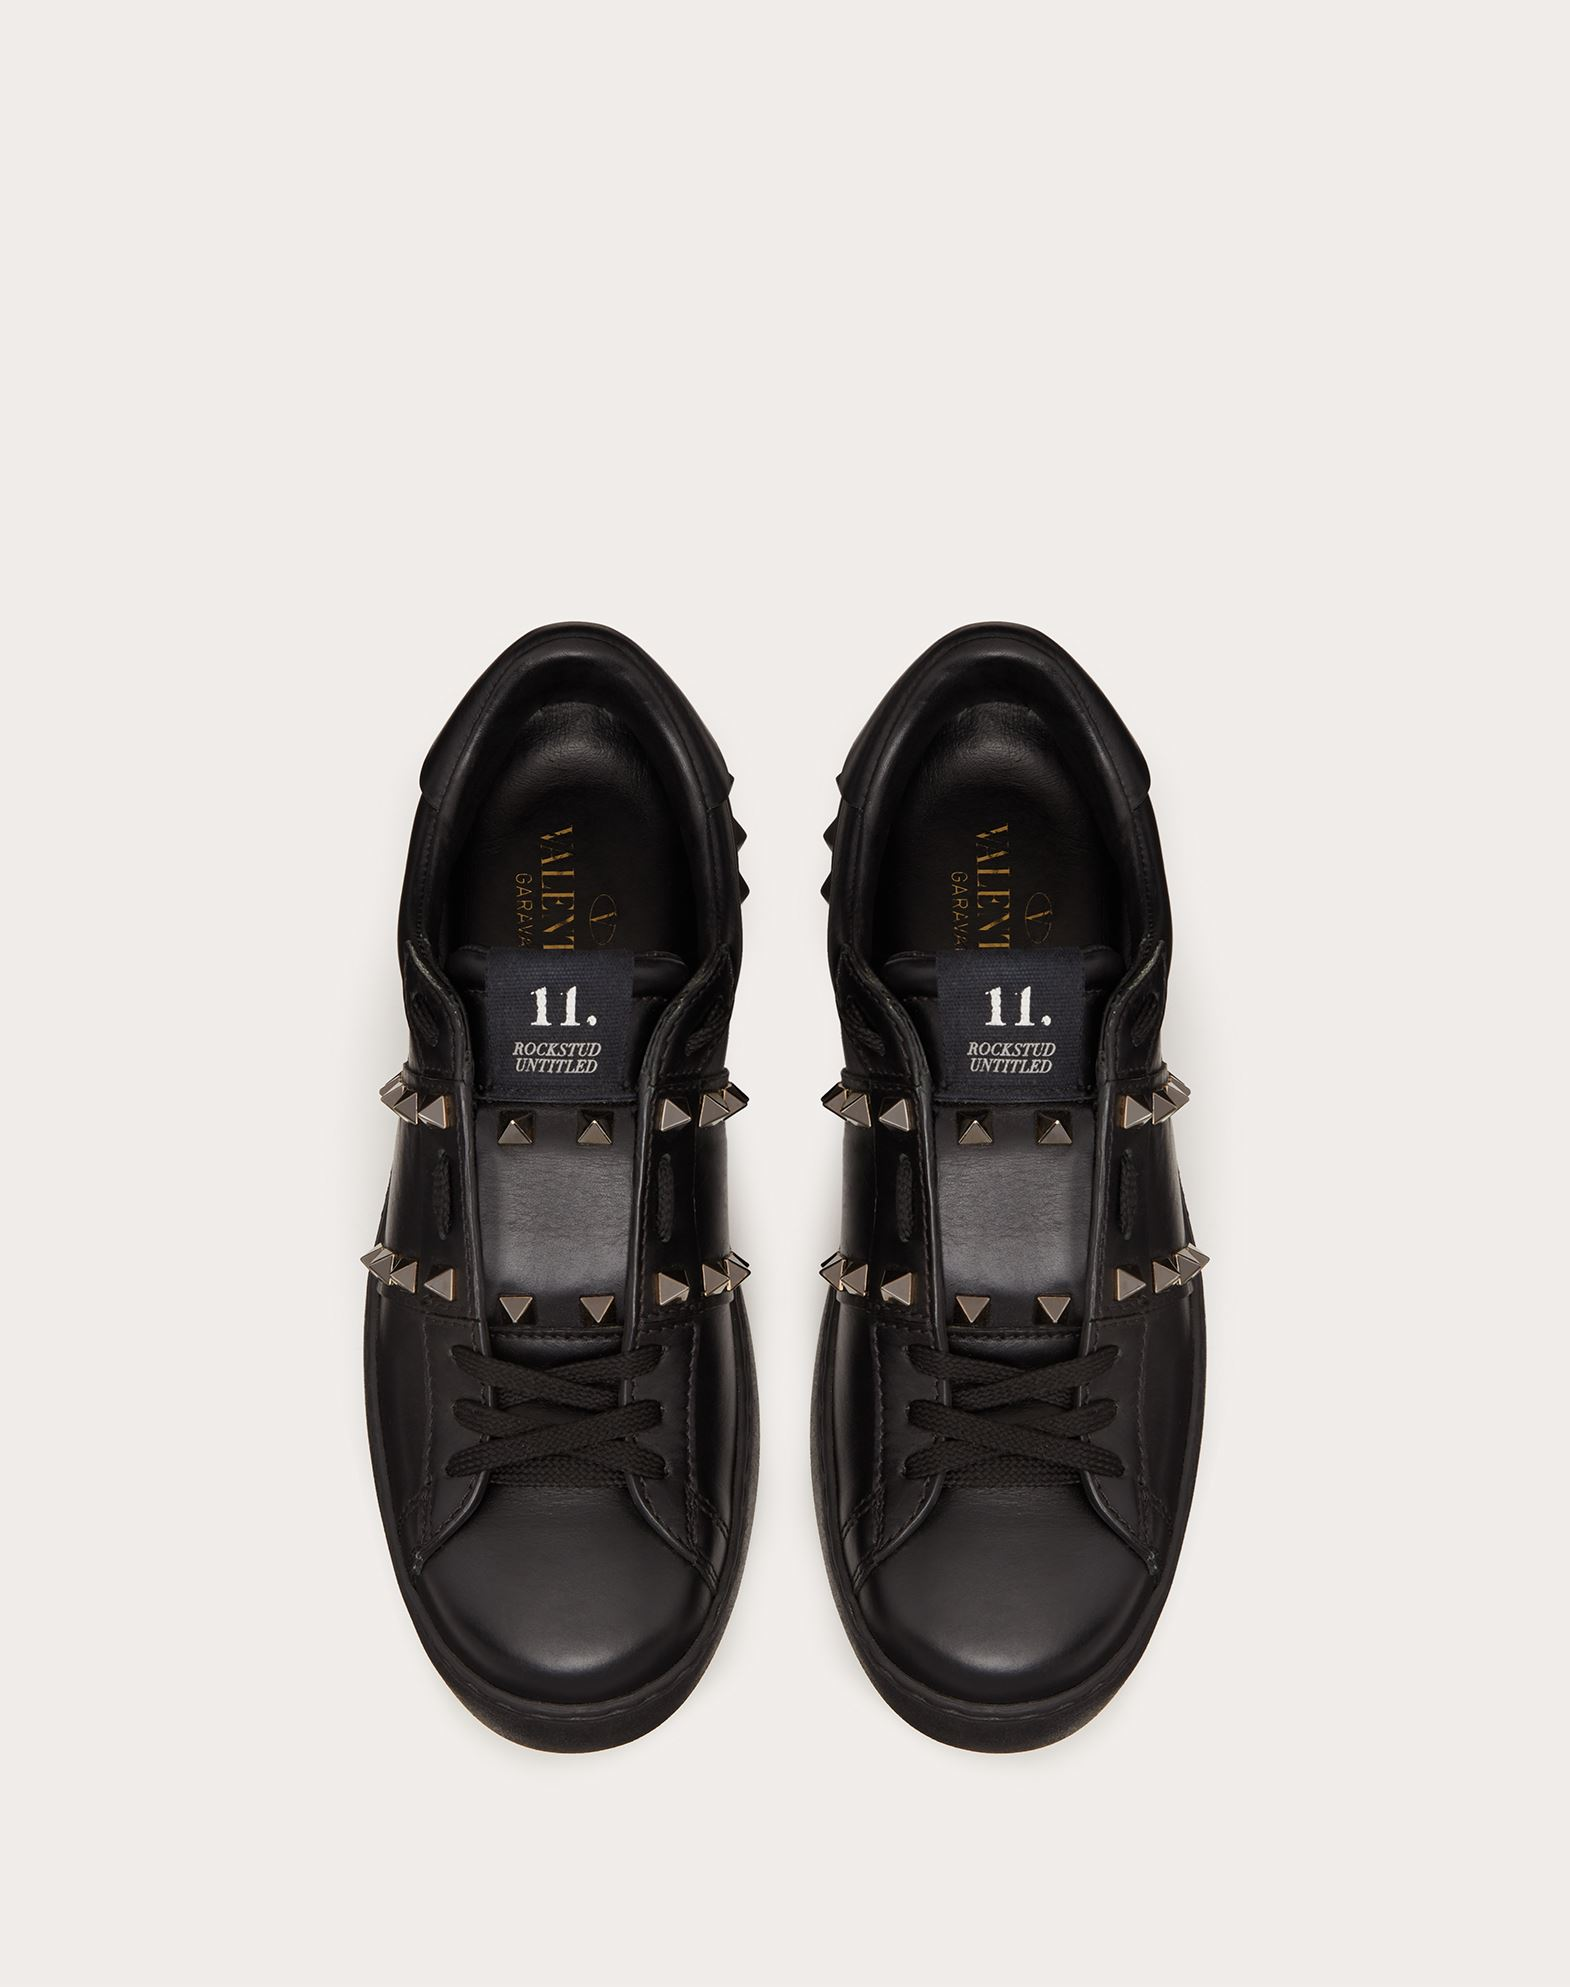 VALENTINO GARAVANI Rockstud Untitled Noir Sneaker LOW-TOP SNEAKERS D e